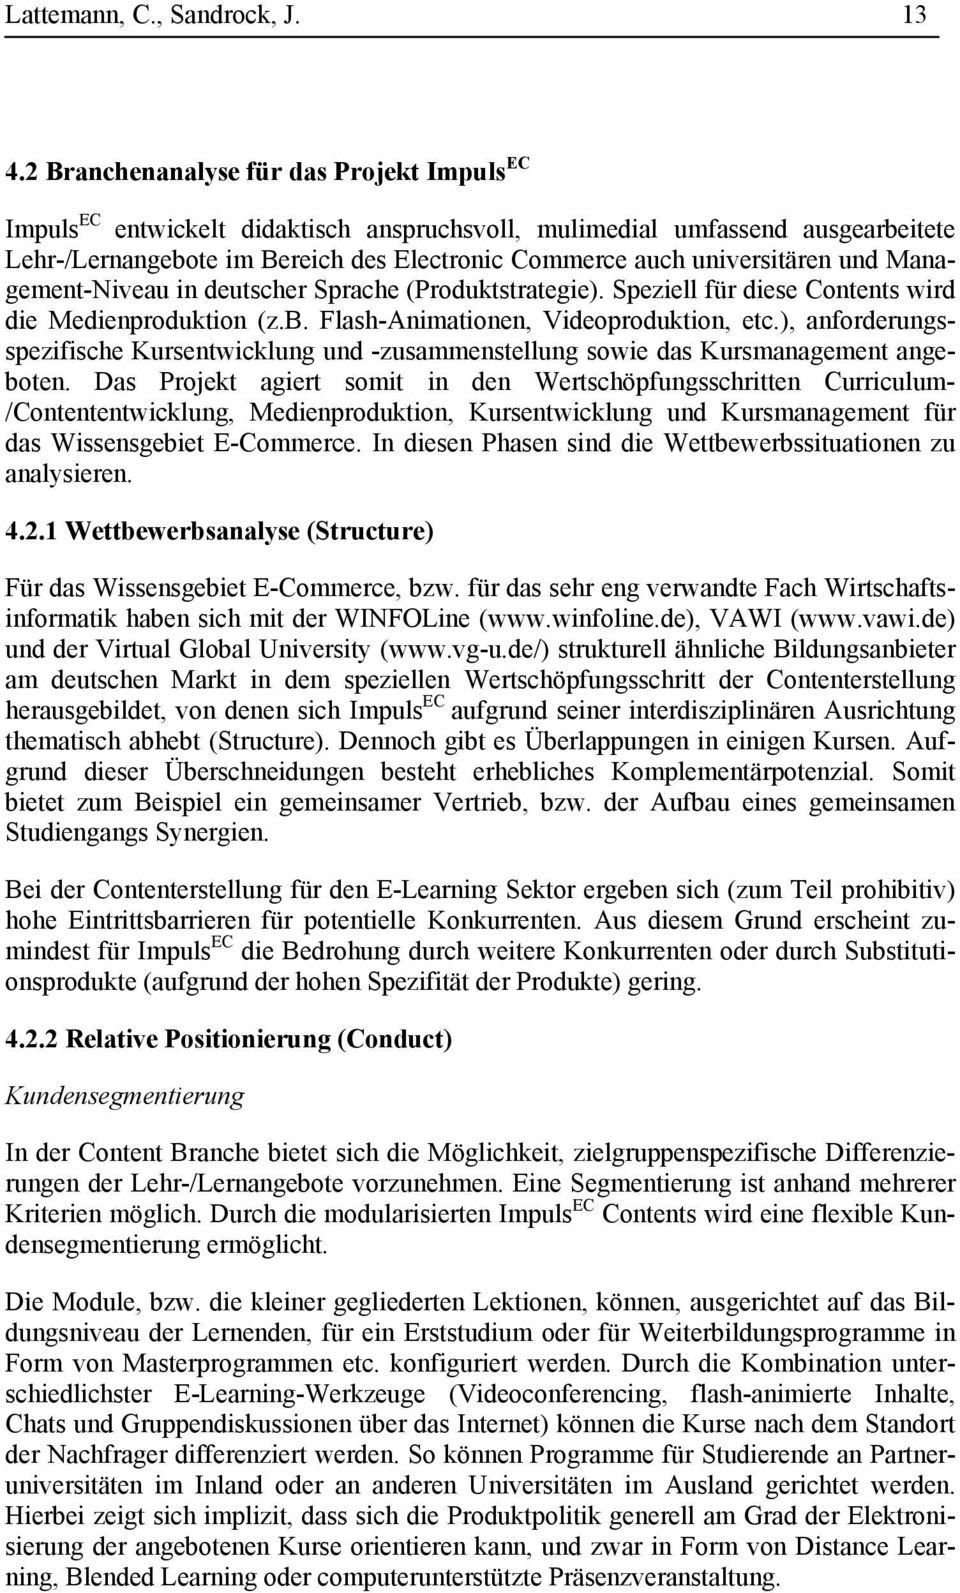 und Management-Niveau in deutscher Sprache (Produktstrategie). Speziell für diese Contents wird die Medienproduktion (z.b. Flash-Animationen, Videoproduktion, etc.